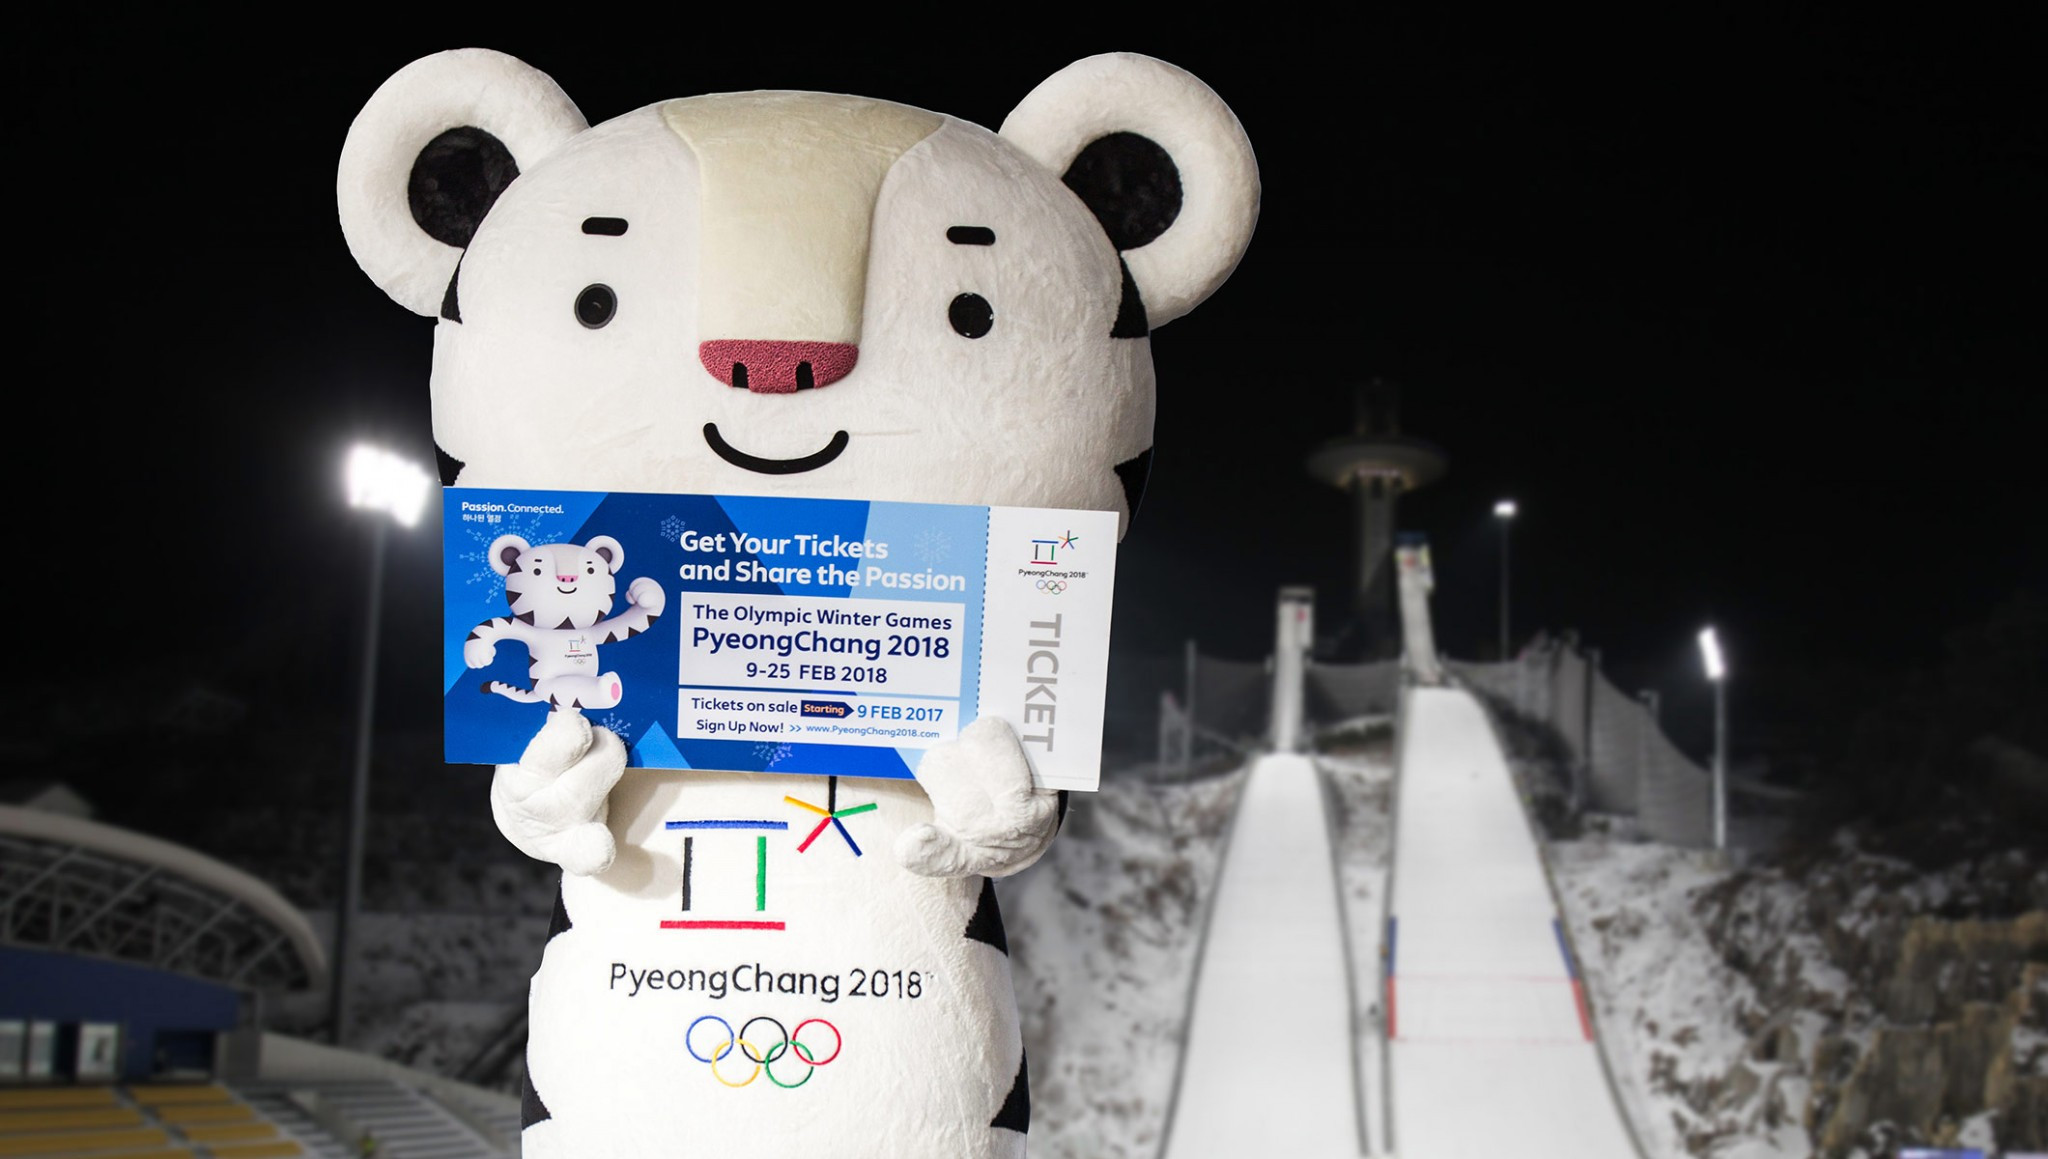 Concerns have been raised over poor ticket sales before Pyeongchang 2018 ©Getty Images